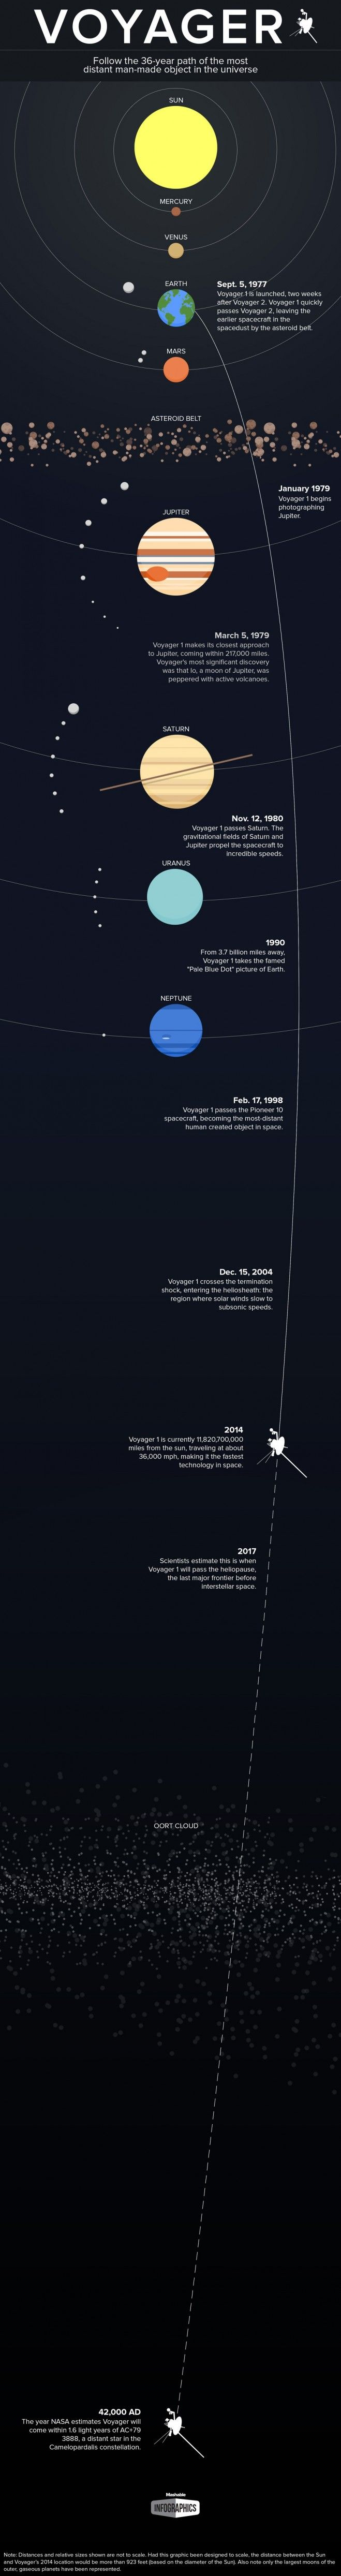 A lovely #infographic tracking Voyager 1's journey into space - now hurtling past Neptune and towards the Sun at 36,000mph.